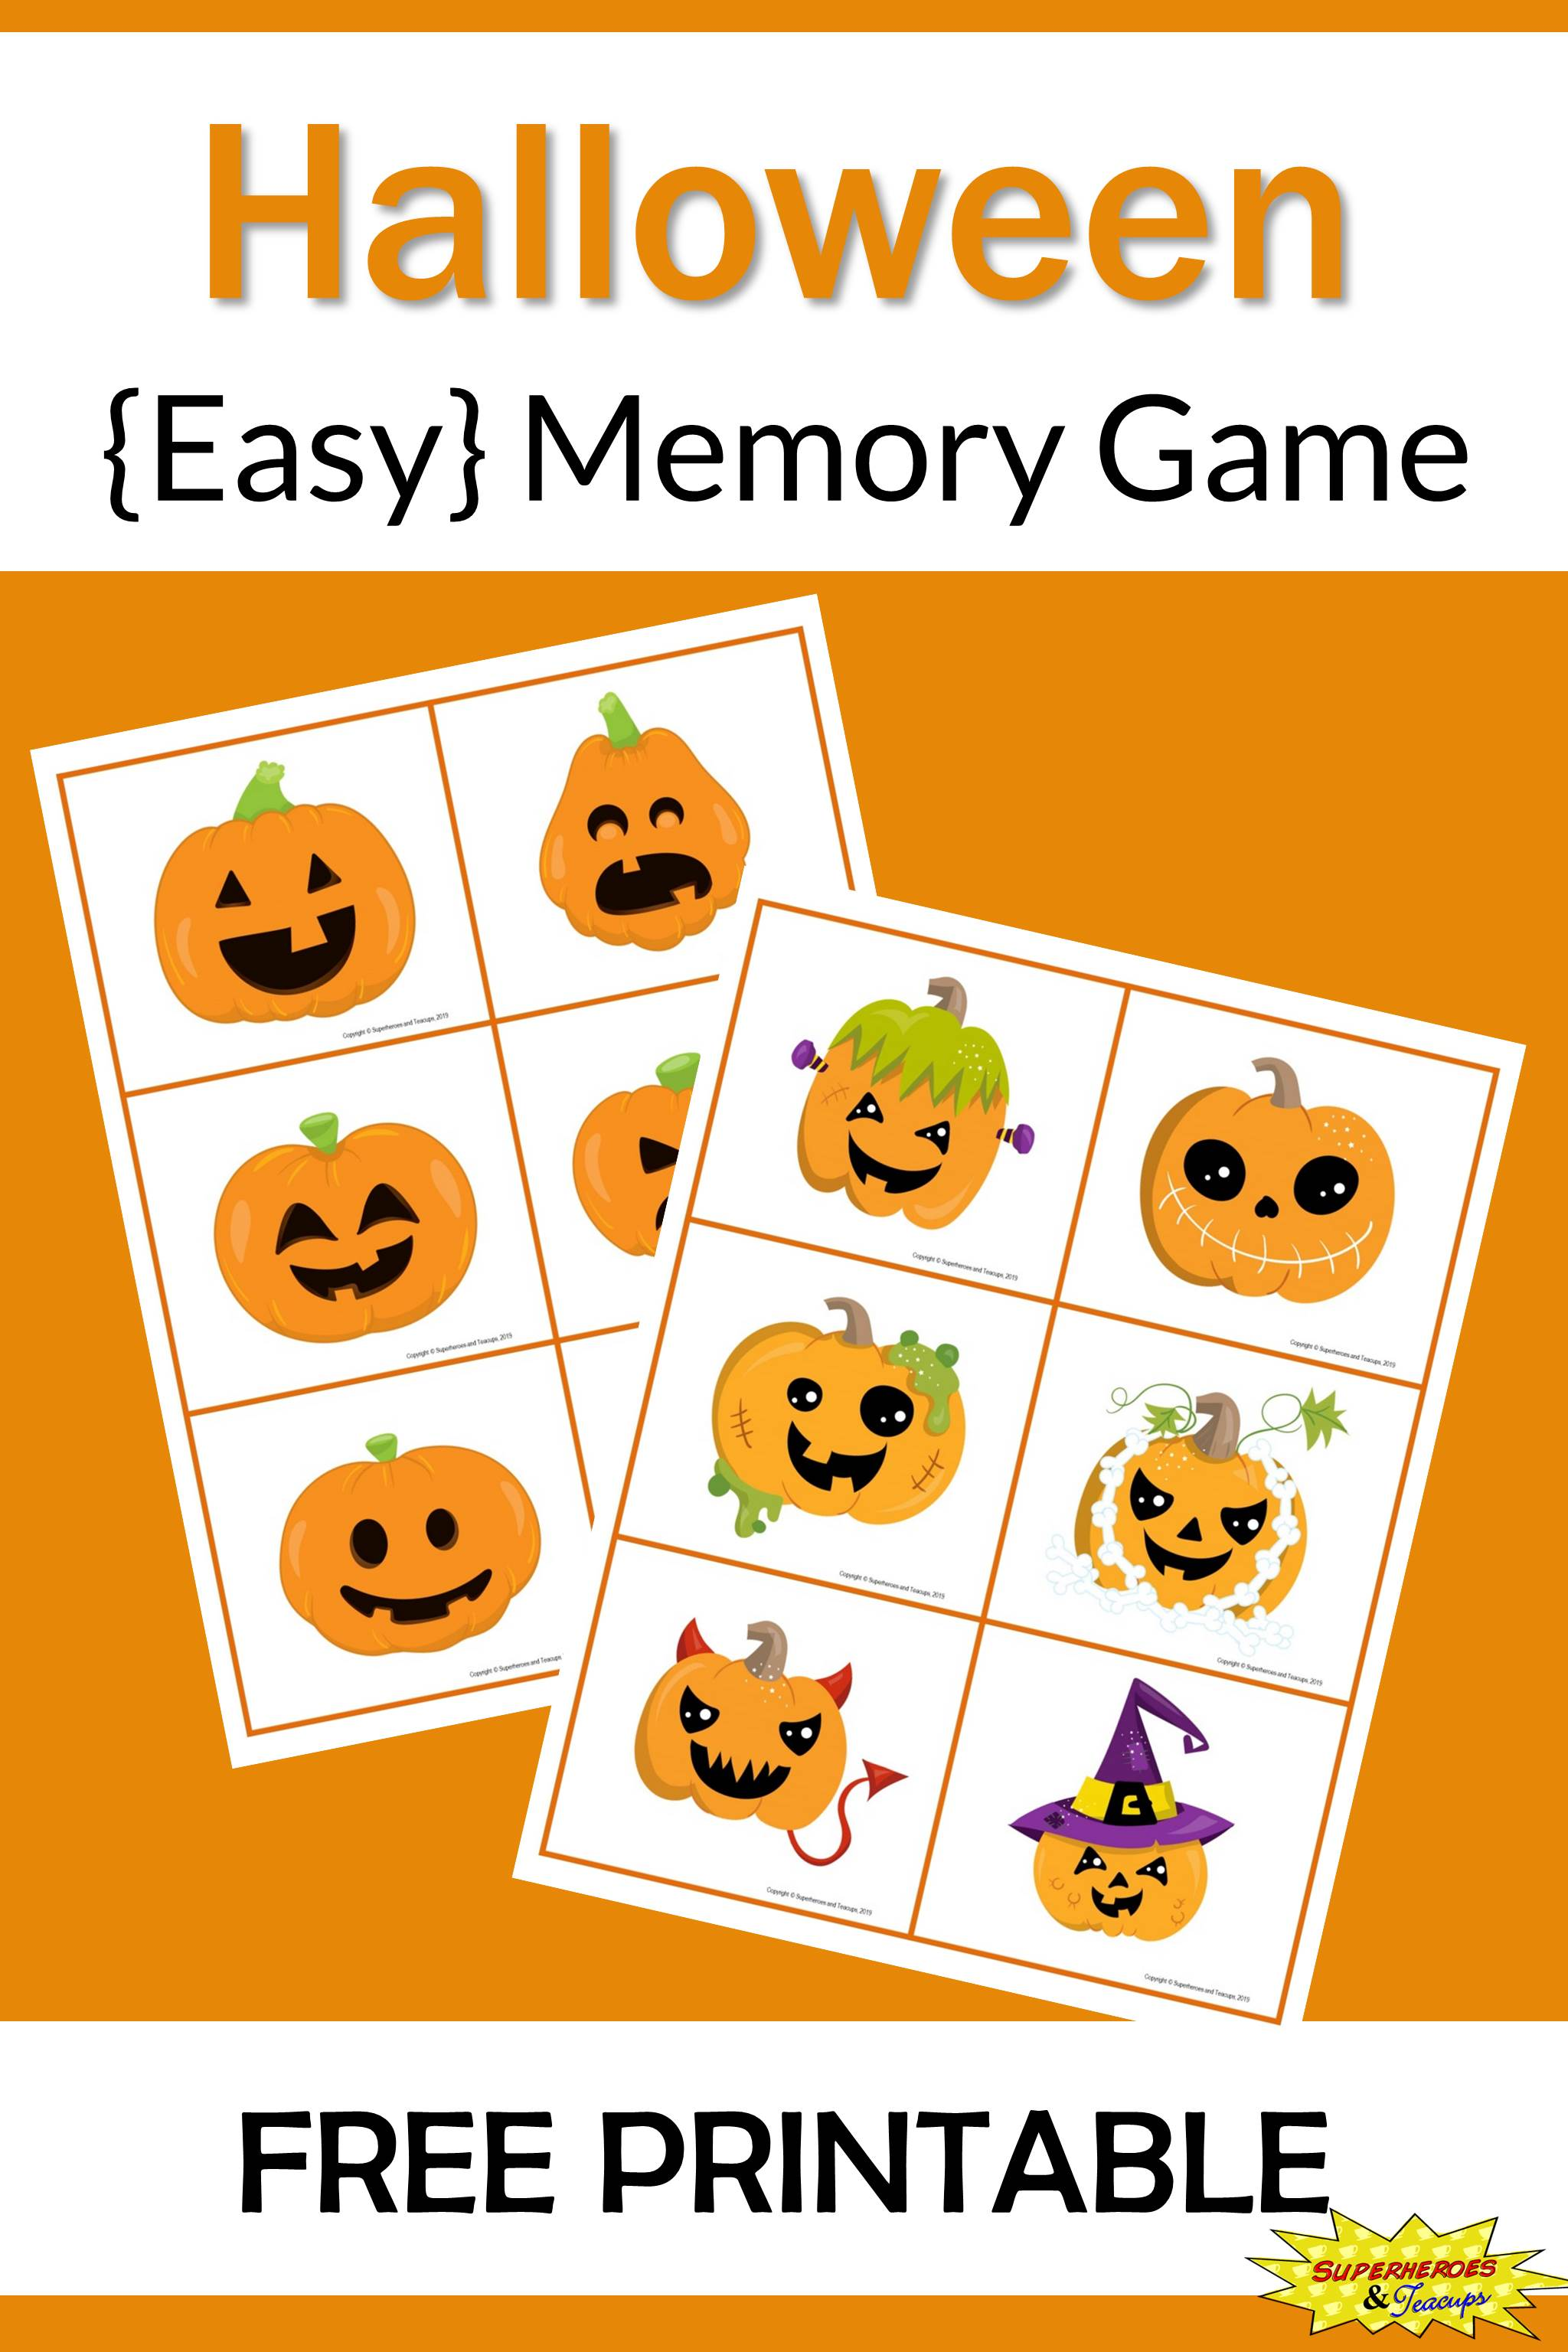 Halloween Memory Game Free Printable